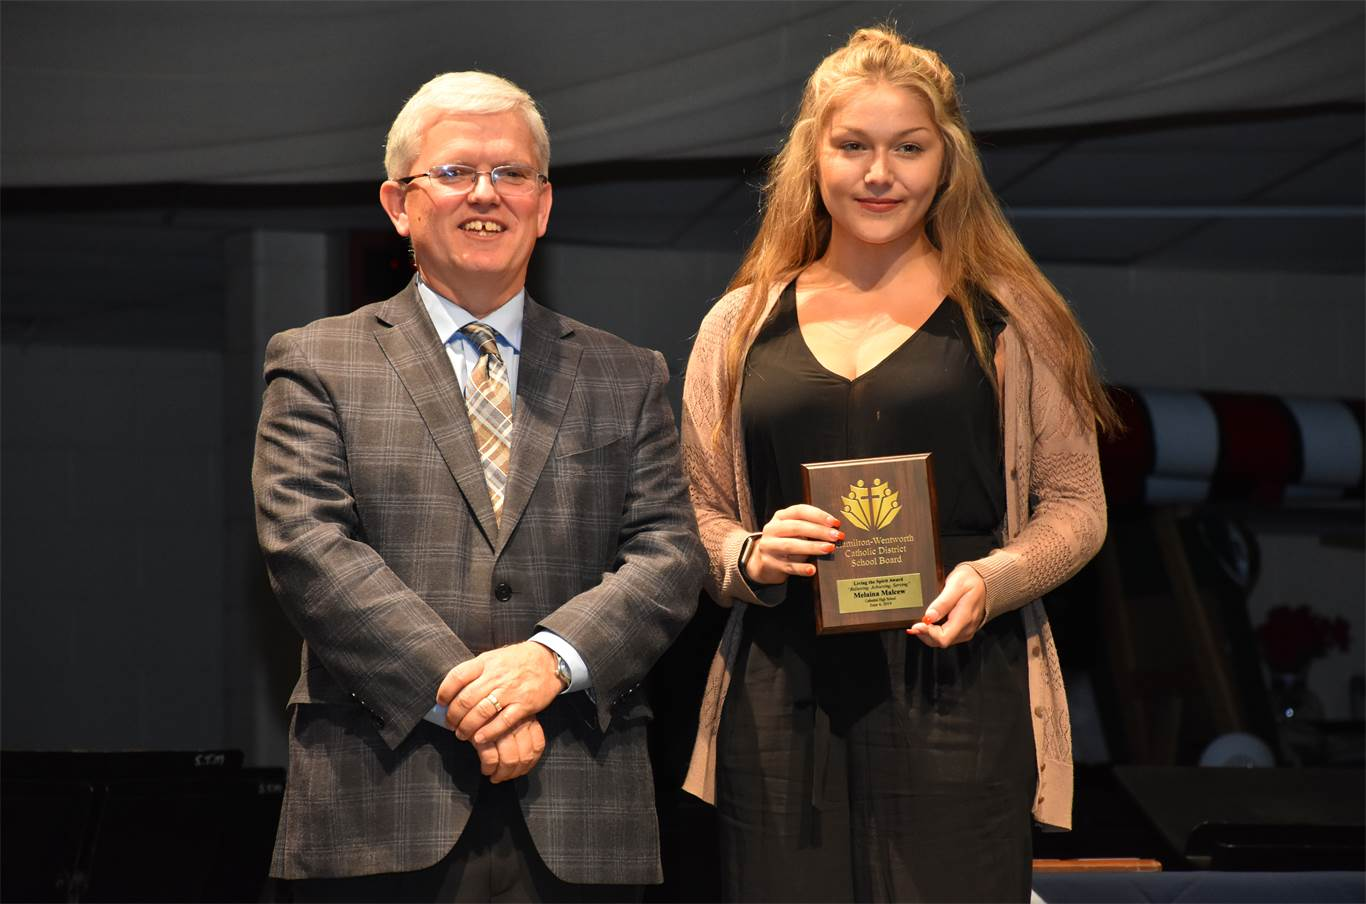 Trustee Patrick Daly presents Melaina Malcew from Cathedral High School with a Living the Spirit Award. The award is presented to a graduating student from each elementary and secondary school who exemplifies the qualities of the Board's logo, 'Believing, Achieving, Serving.'